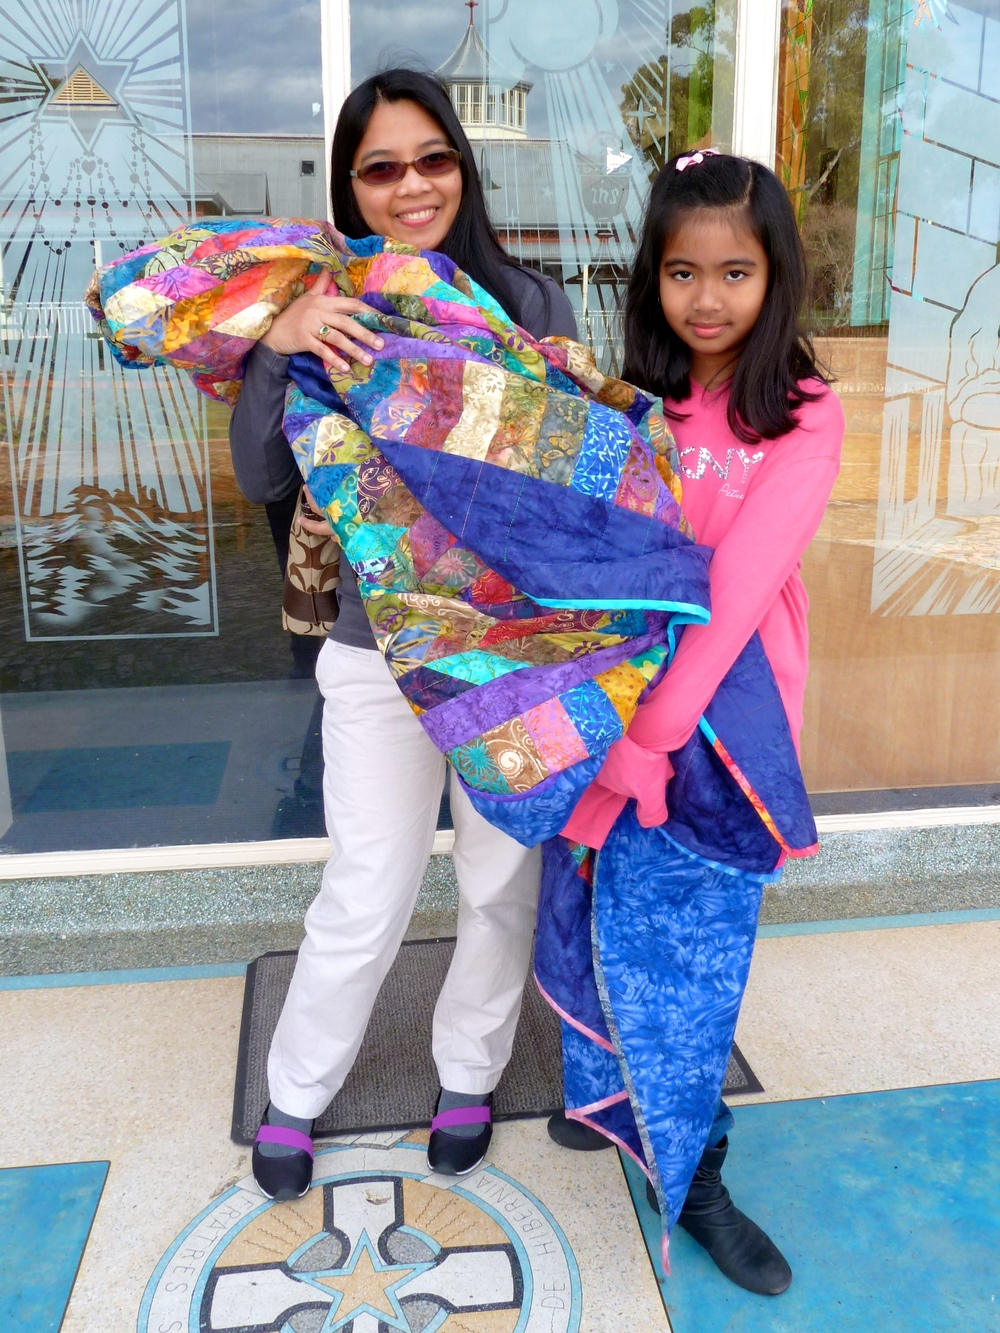 Agnes Gabriel and her daughter Ana happy to receive the quilt